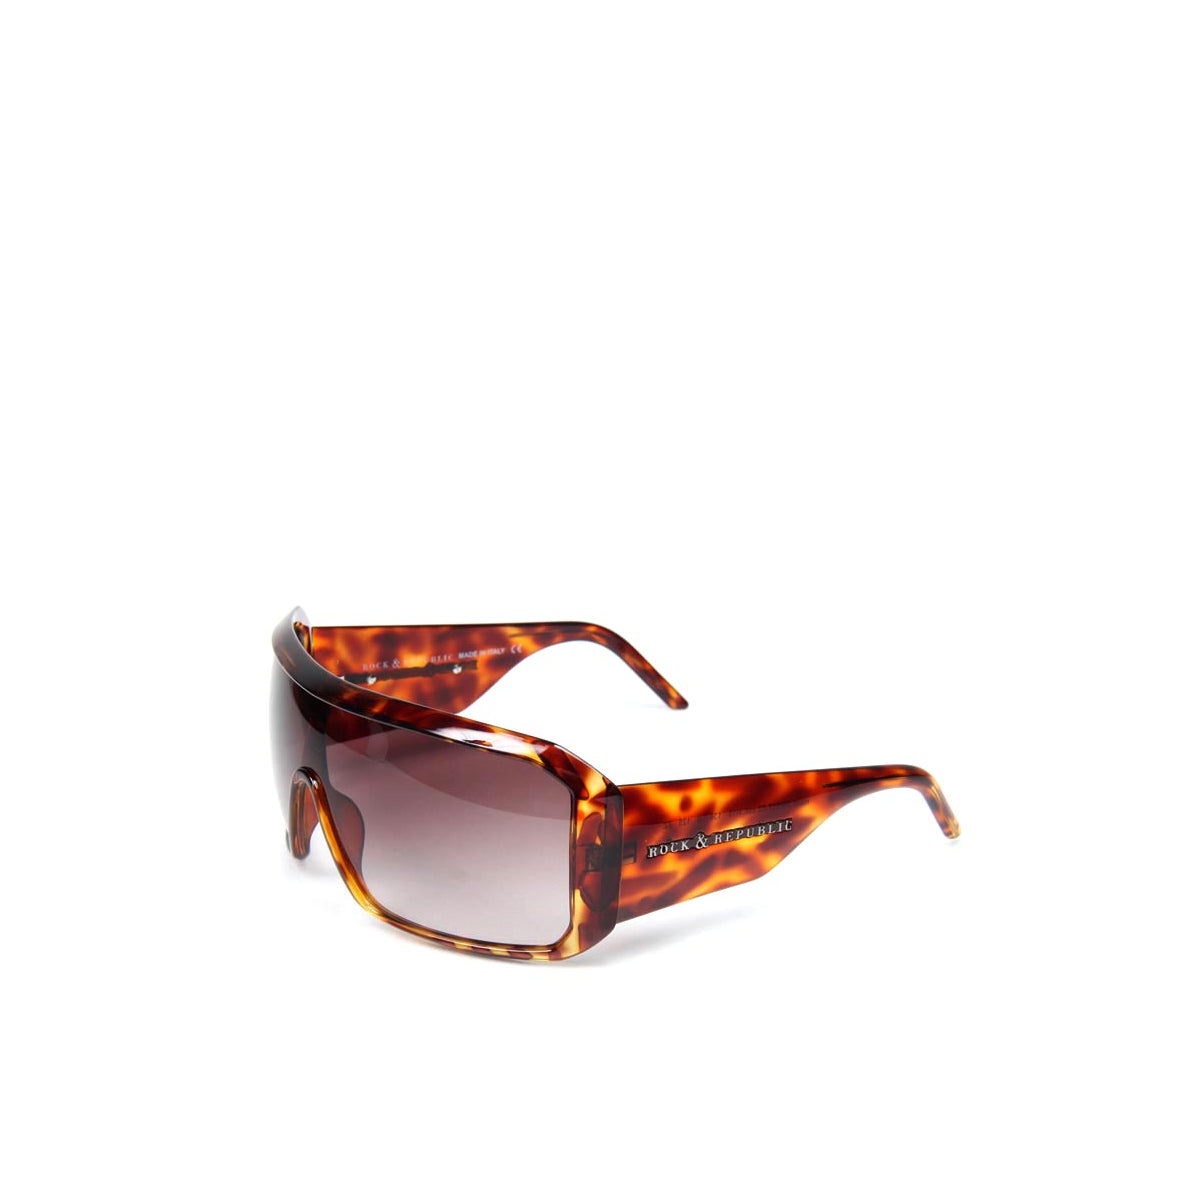 Rock & Republic ladies sunglasses RR51702